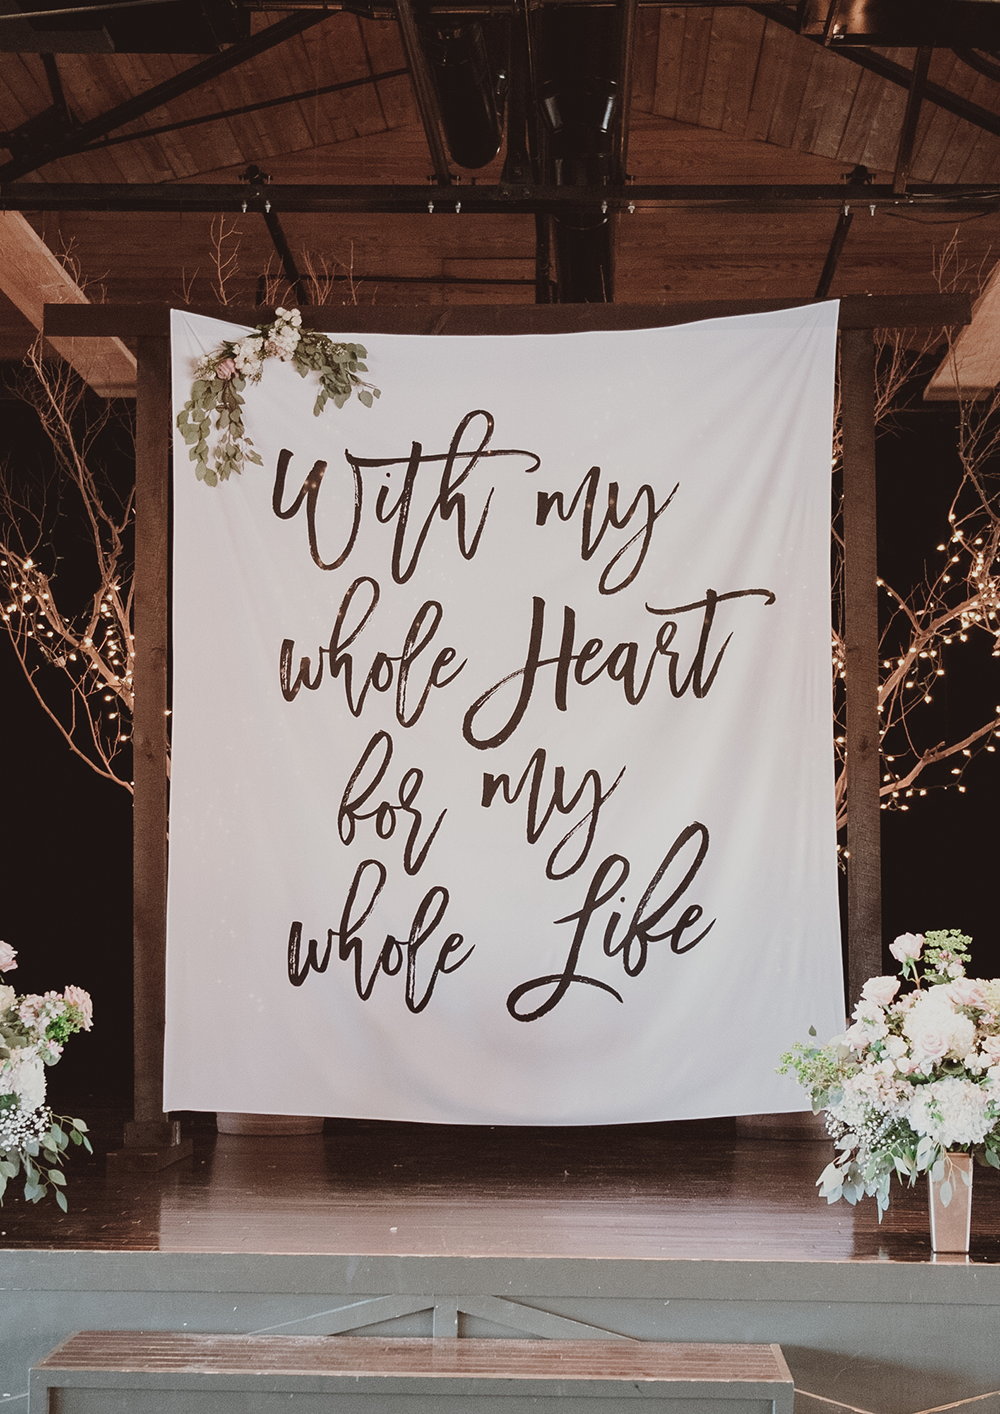 Rustic Wedding Backdrop With My Whole Heart For My Whole Life | Etsy